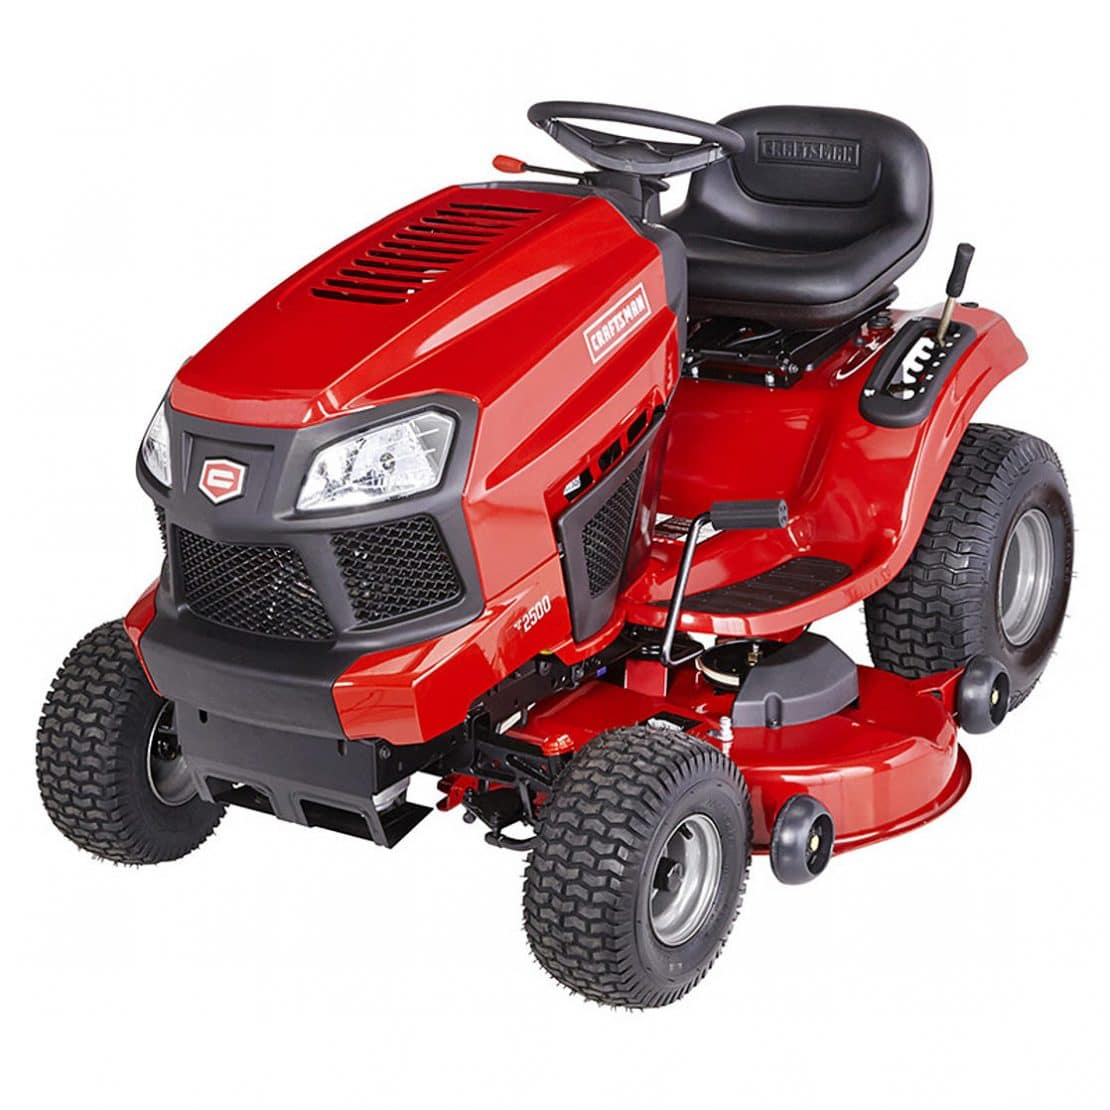 2016 Craftsman Yard Tractor Line-Up - One Now With Power